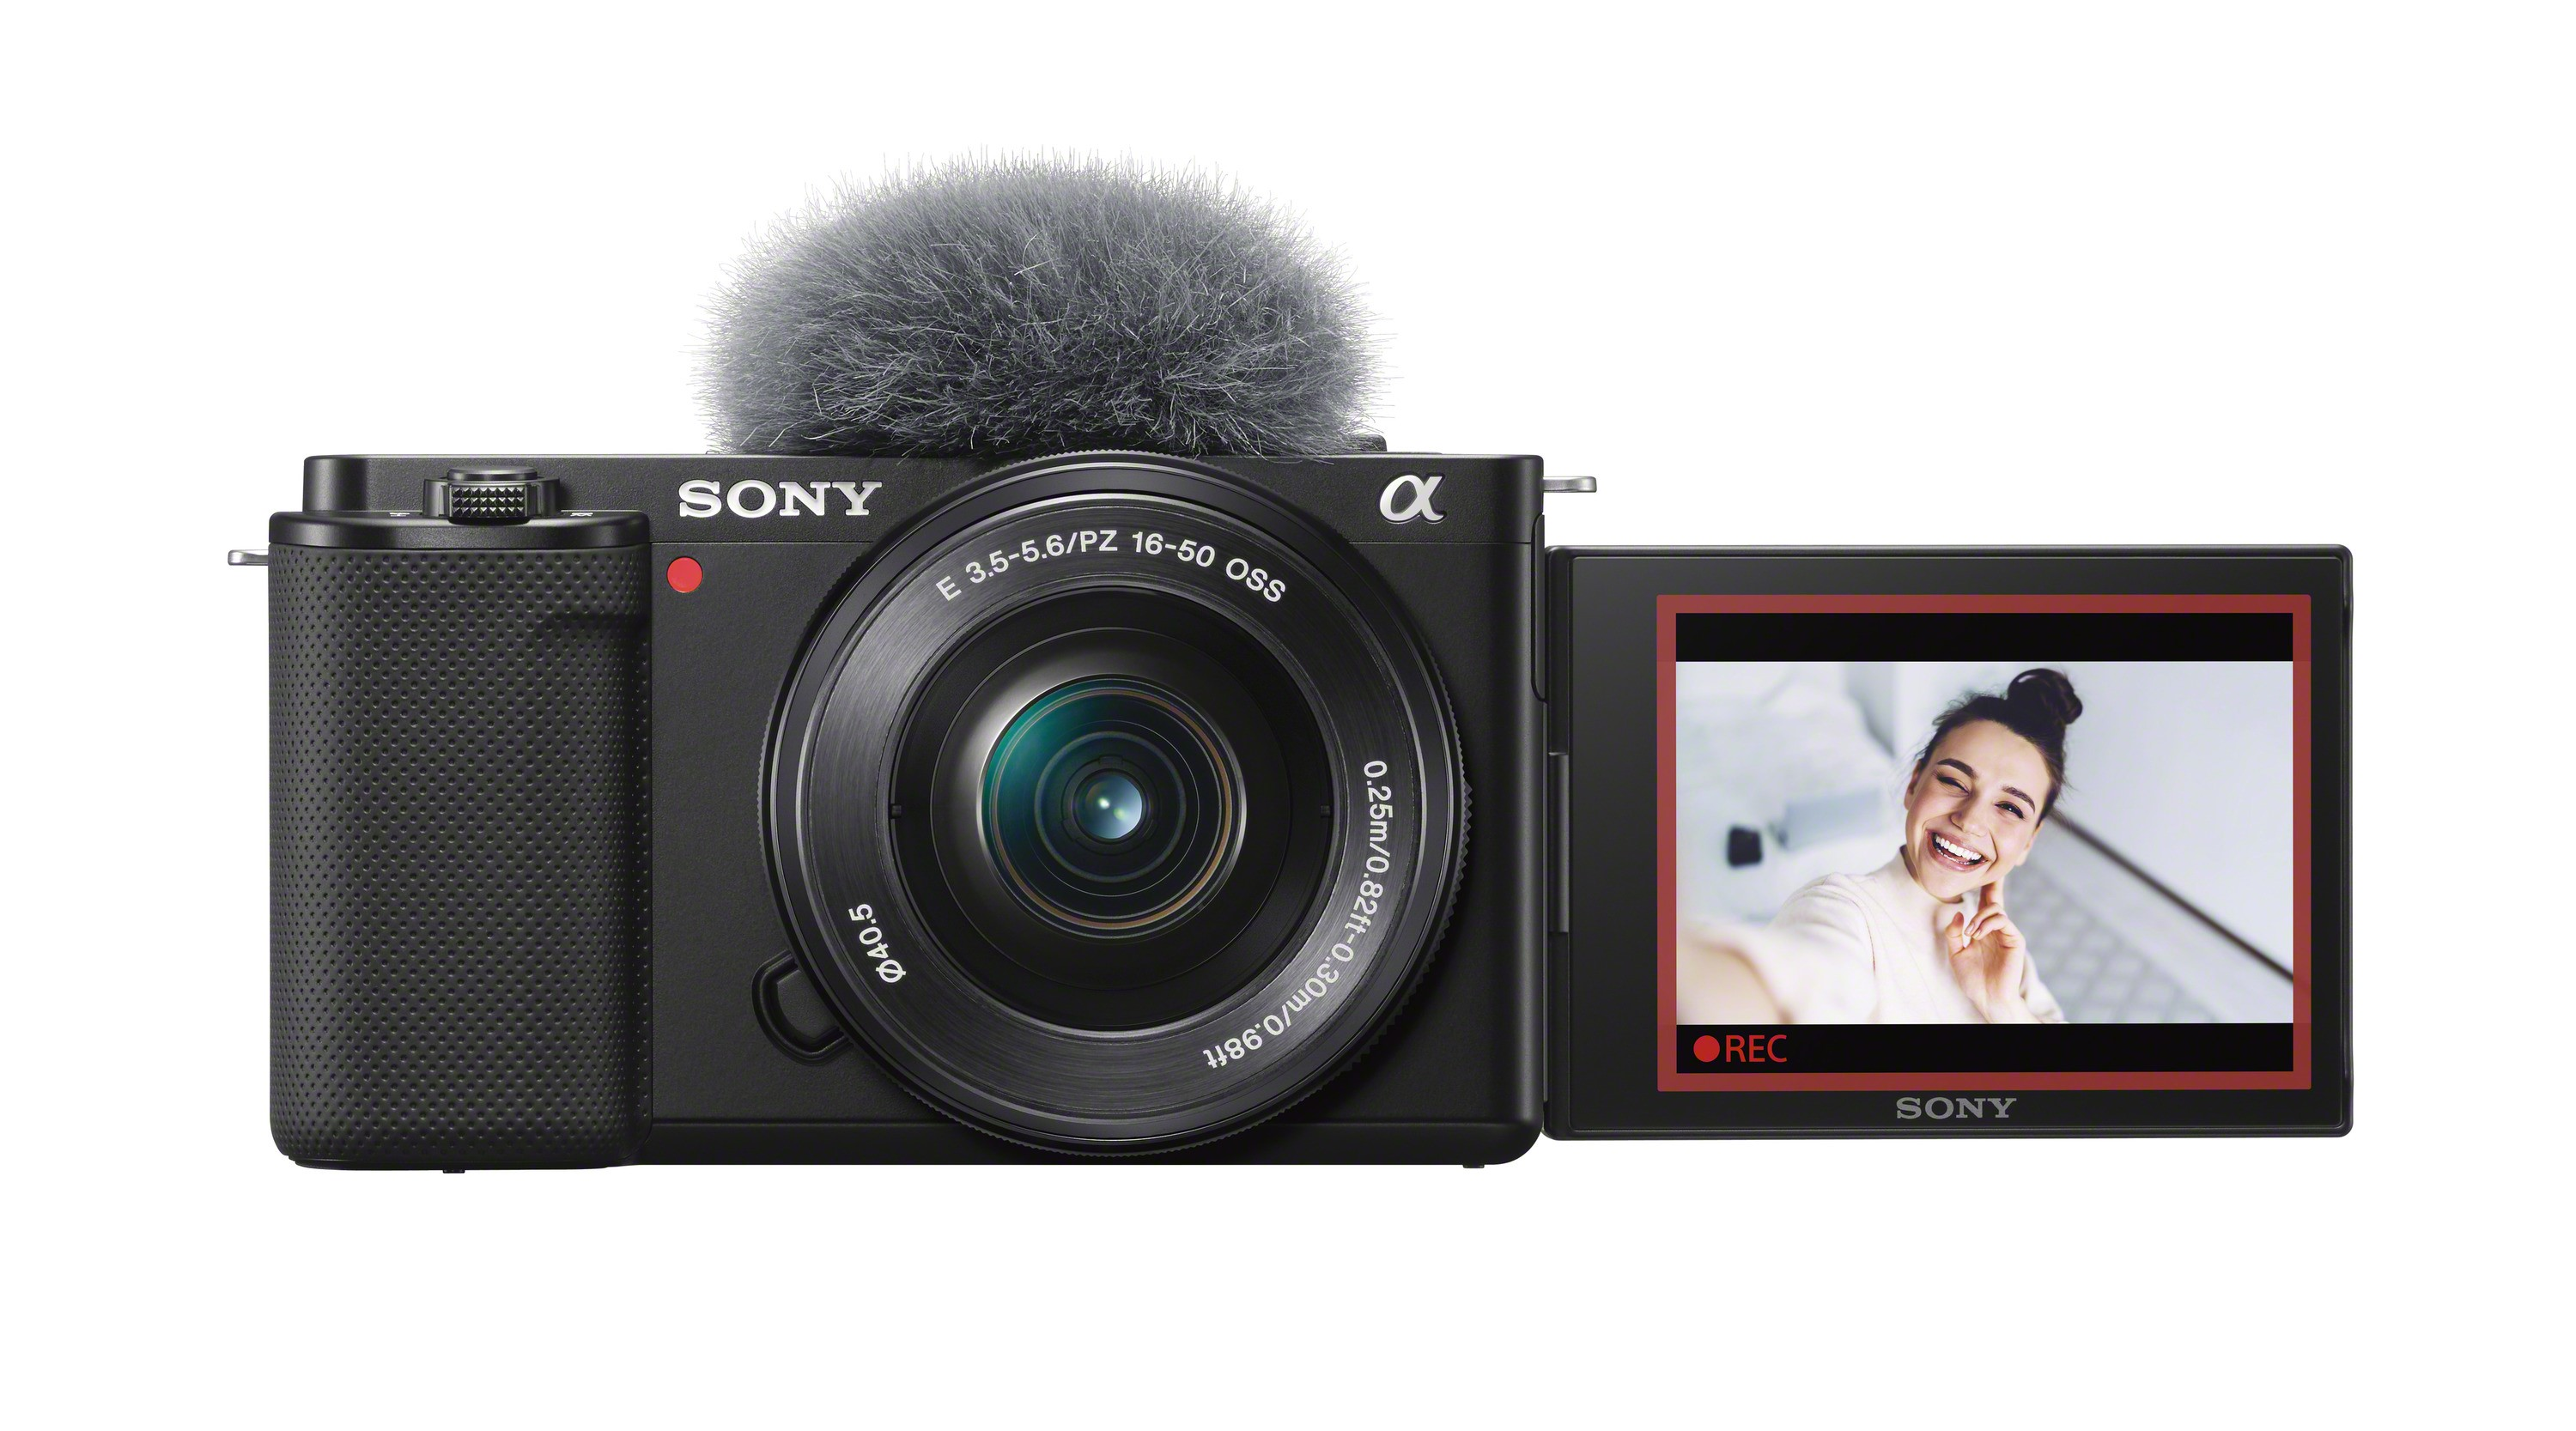 Sony Alpha ZV-E10 is a mirrorless camera with an interchangeable lens